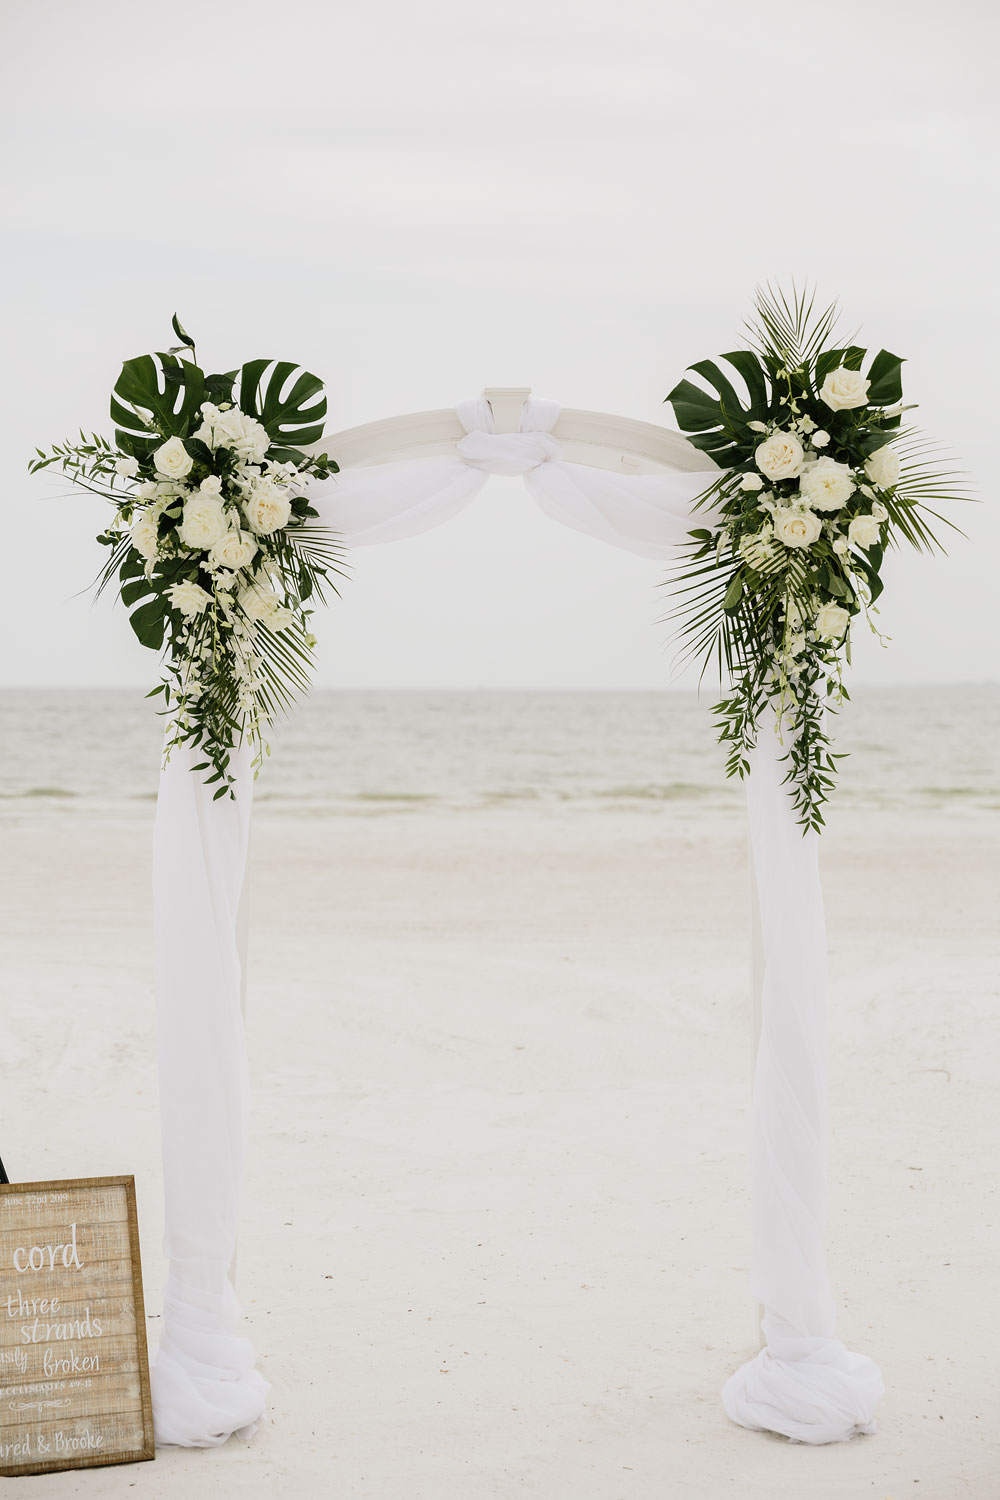 white archway at wedding on beach